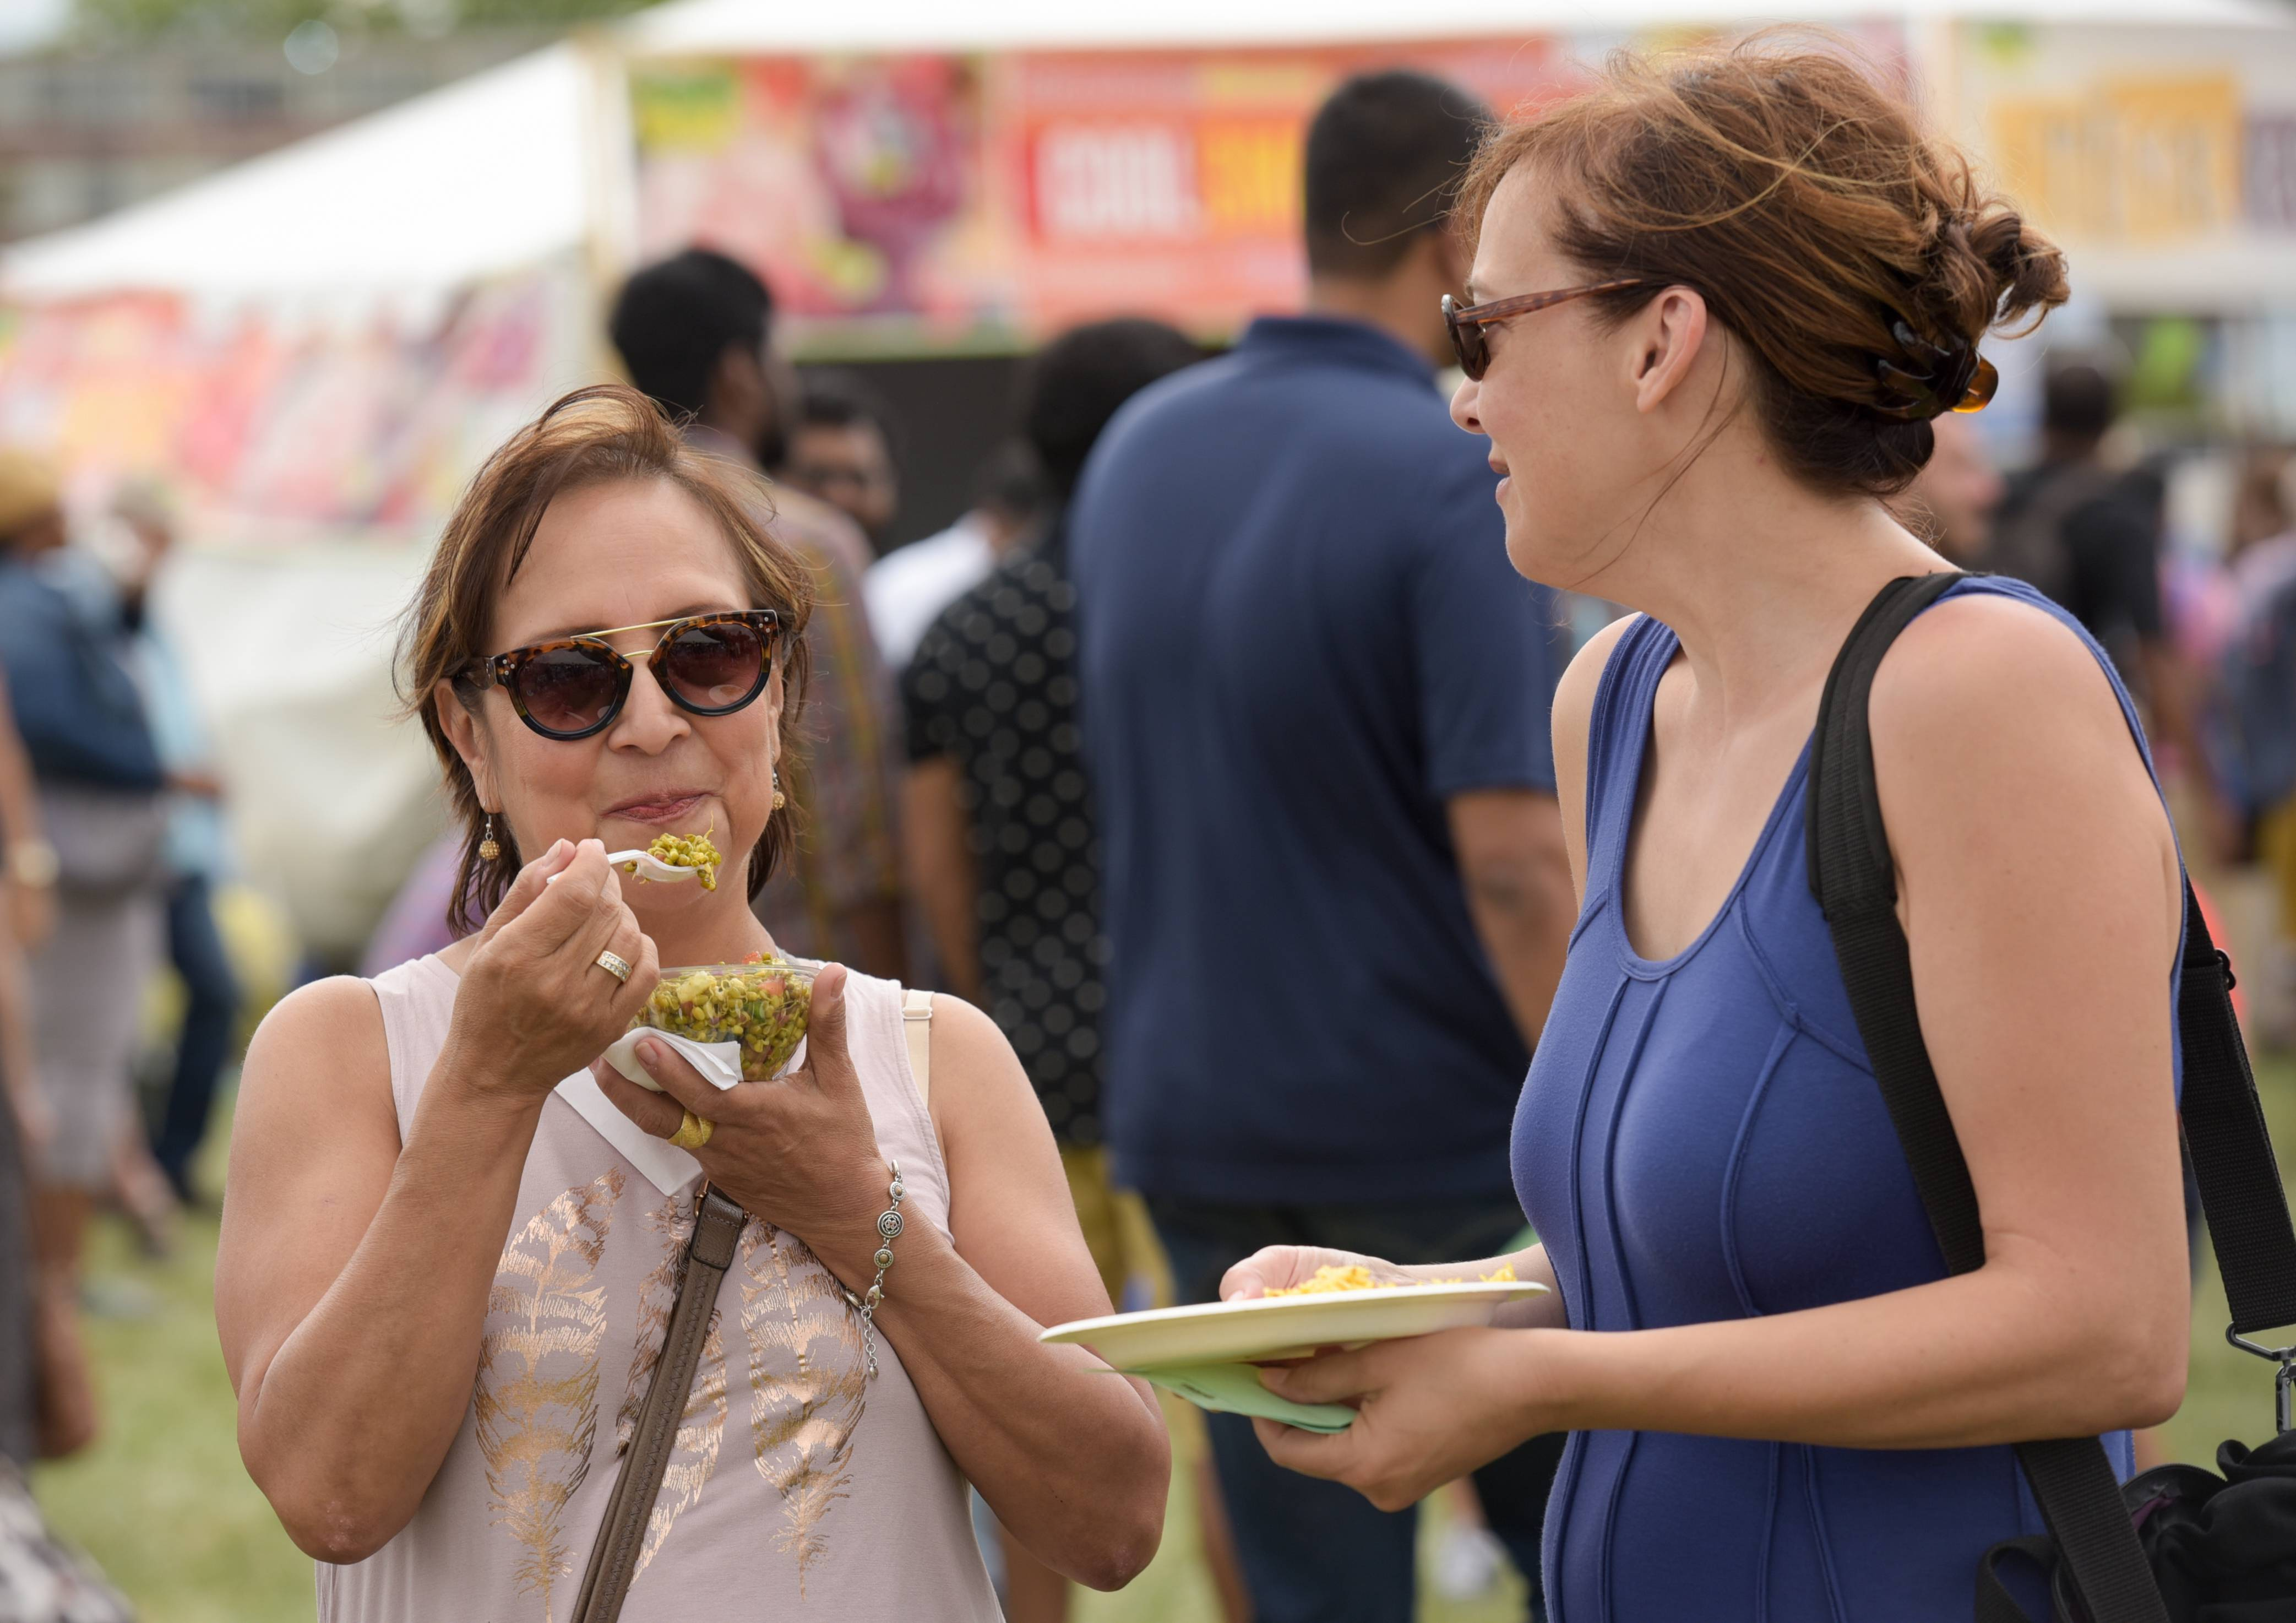 Laura Martinez of Naperville enjoys some lentils and Jennifer Ahern of Westchester enjoys a falafel while at the 12th annual Veggie Fest held this year at Benedictine University in Lisle.